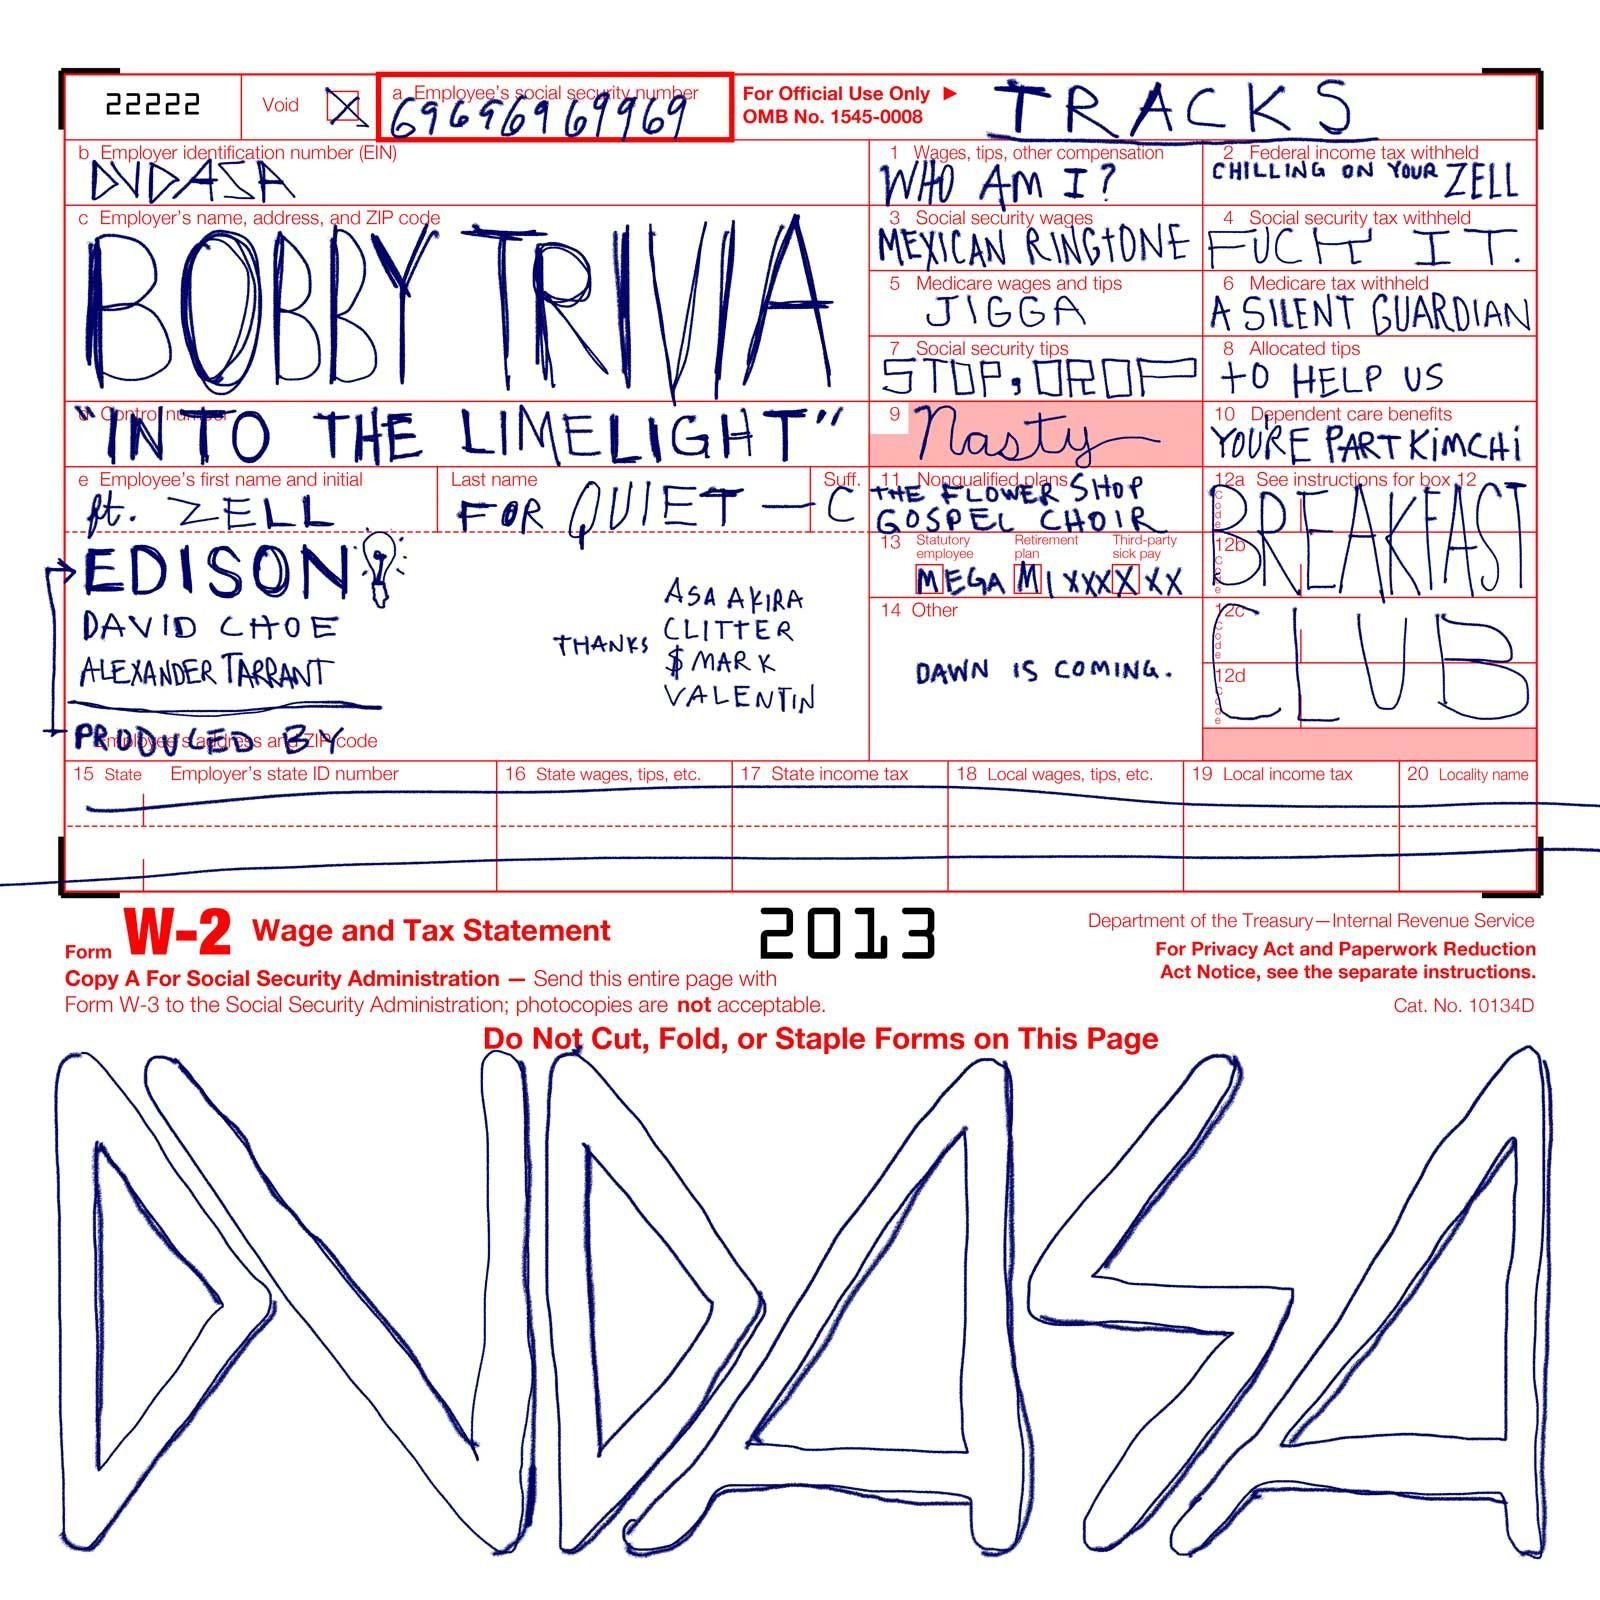 Bobby Trivia Album Artwork  Dvdasa    Trivia And Artwork